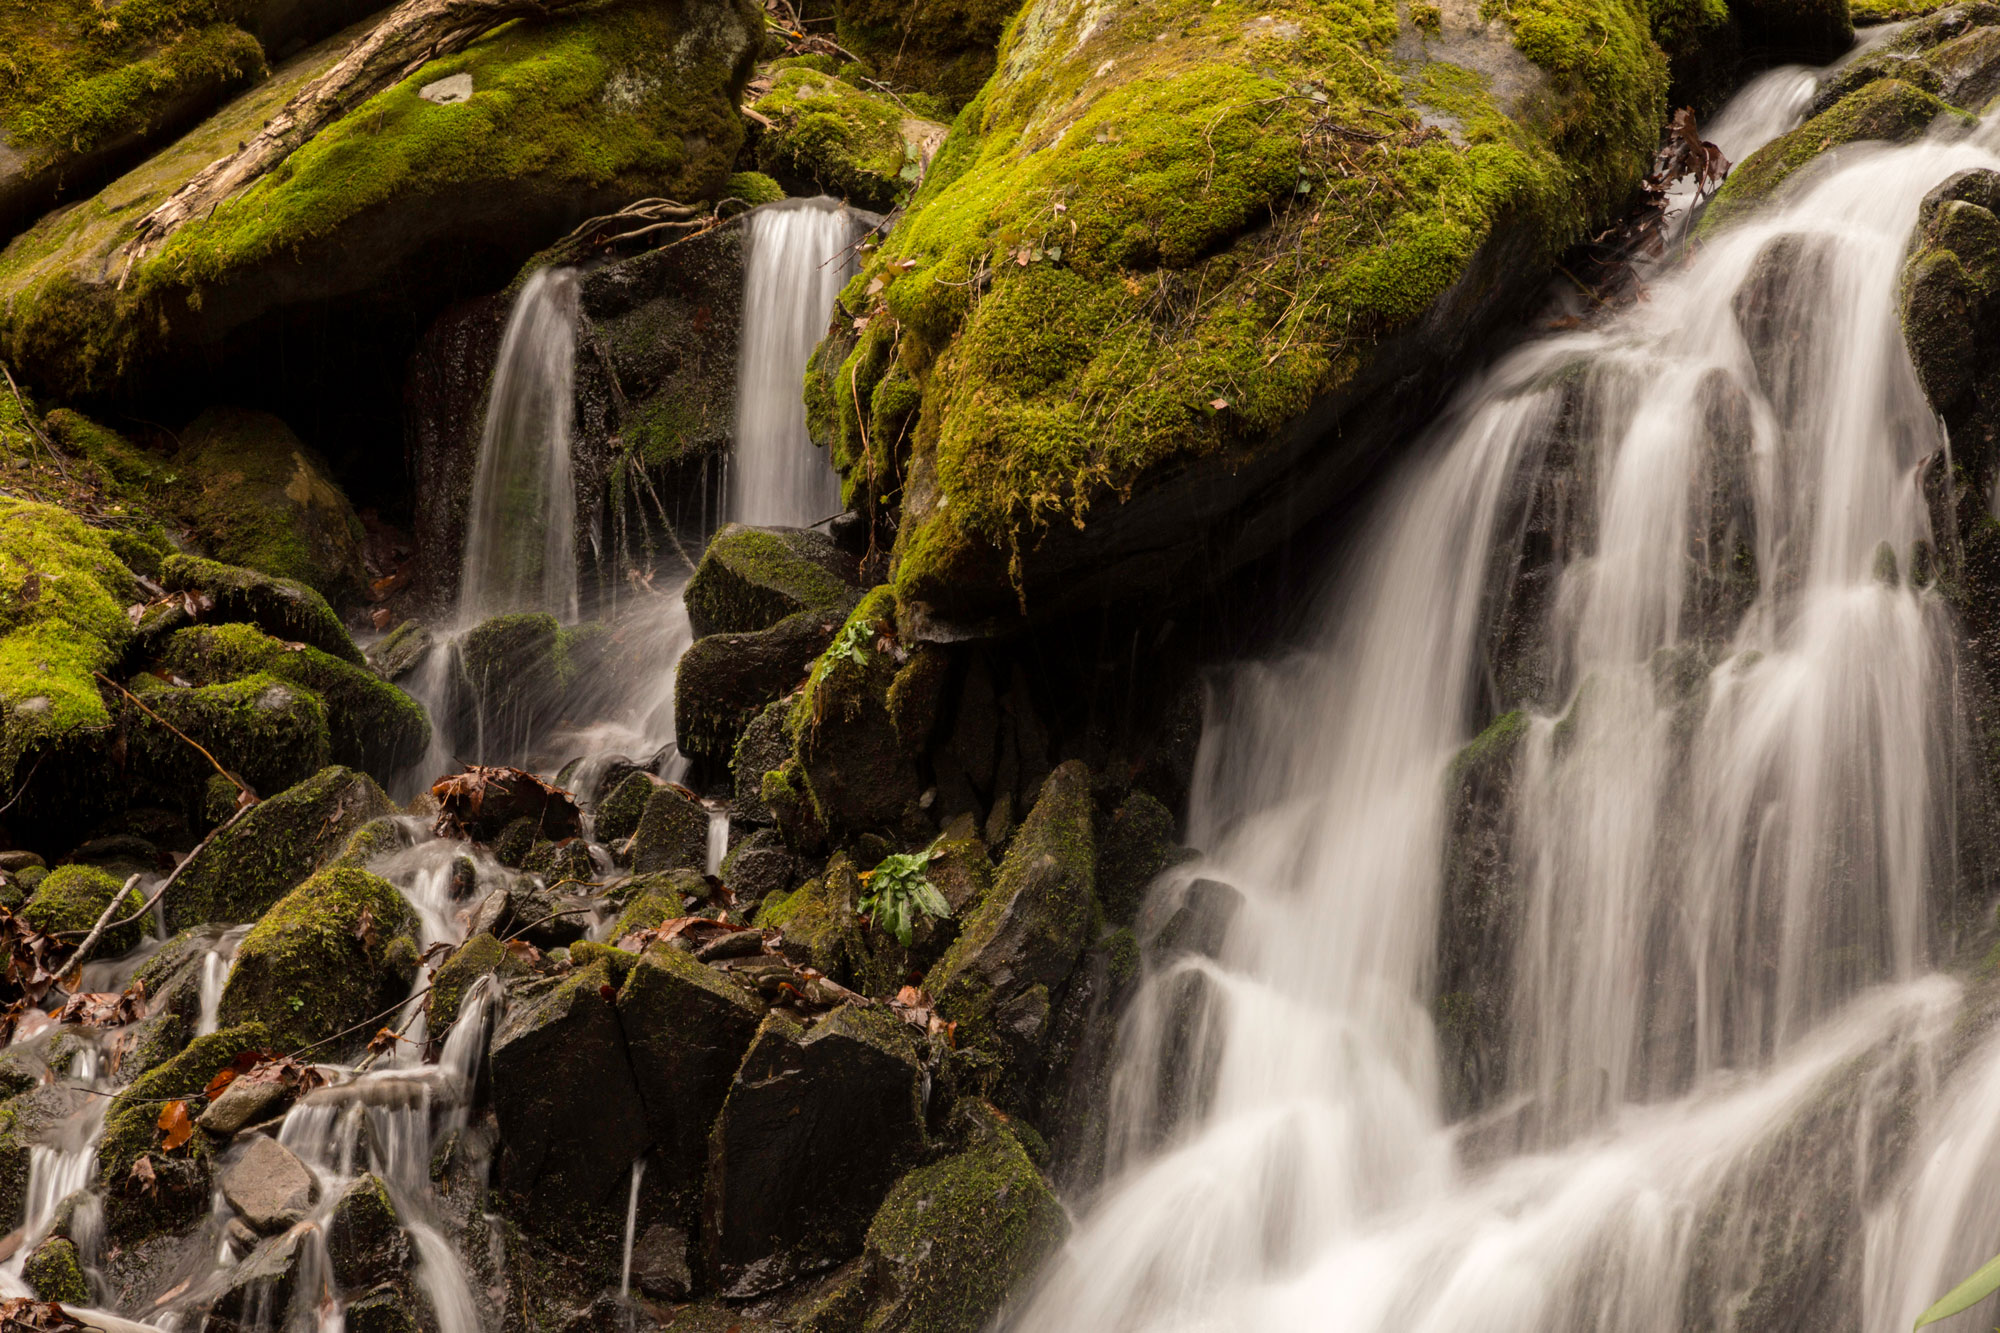 Flowing water in the Smokies. Photo by Ken Thompson.